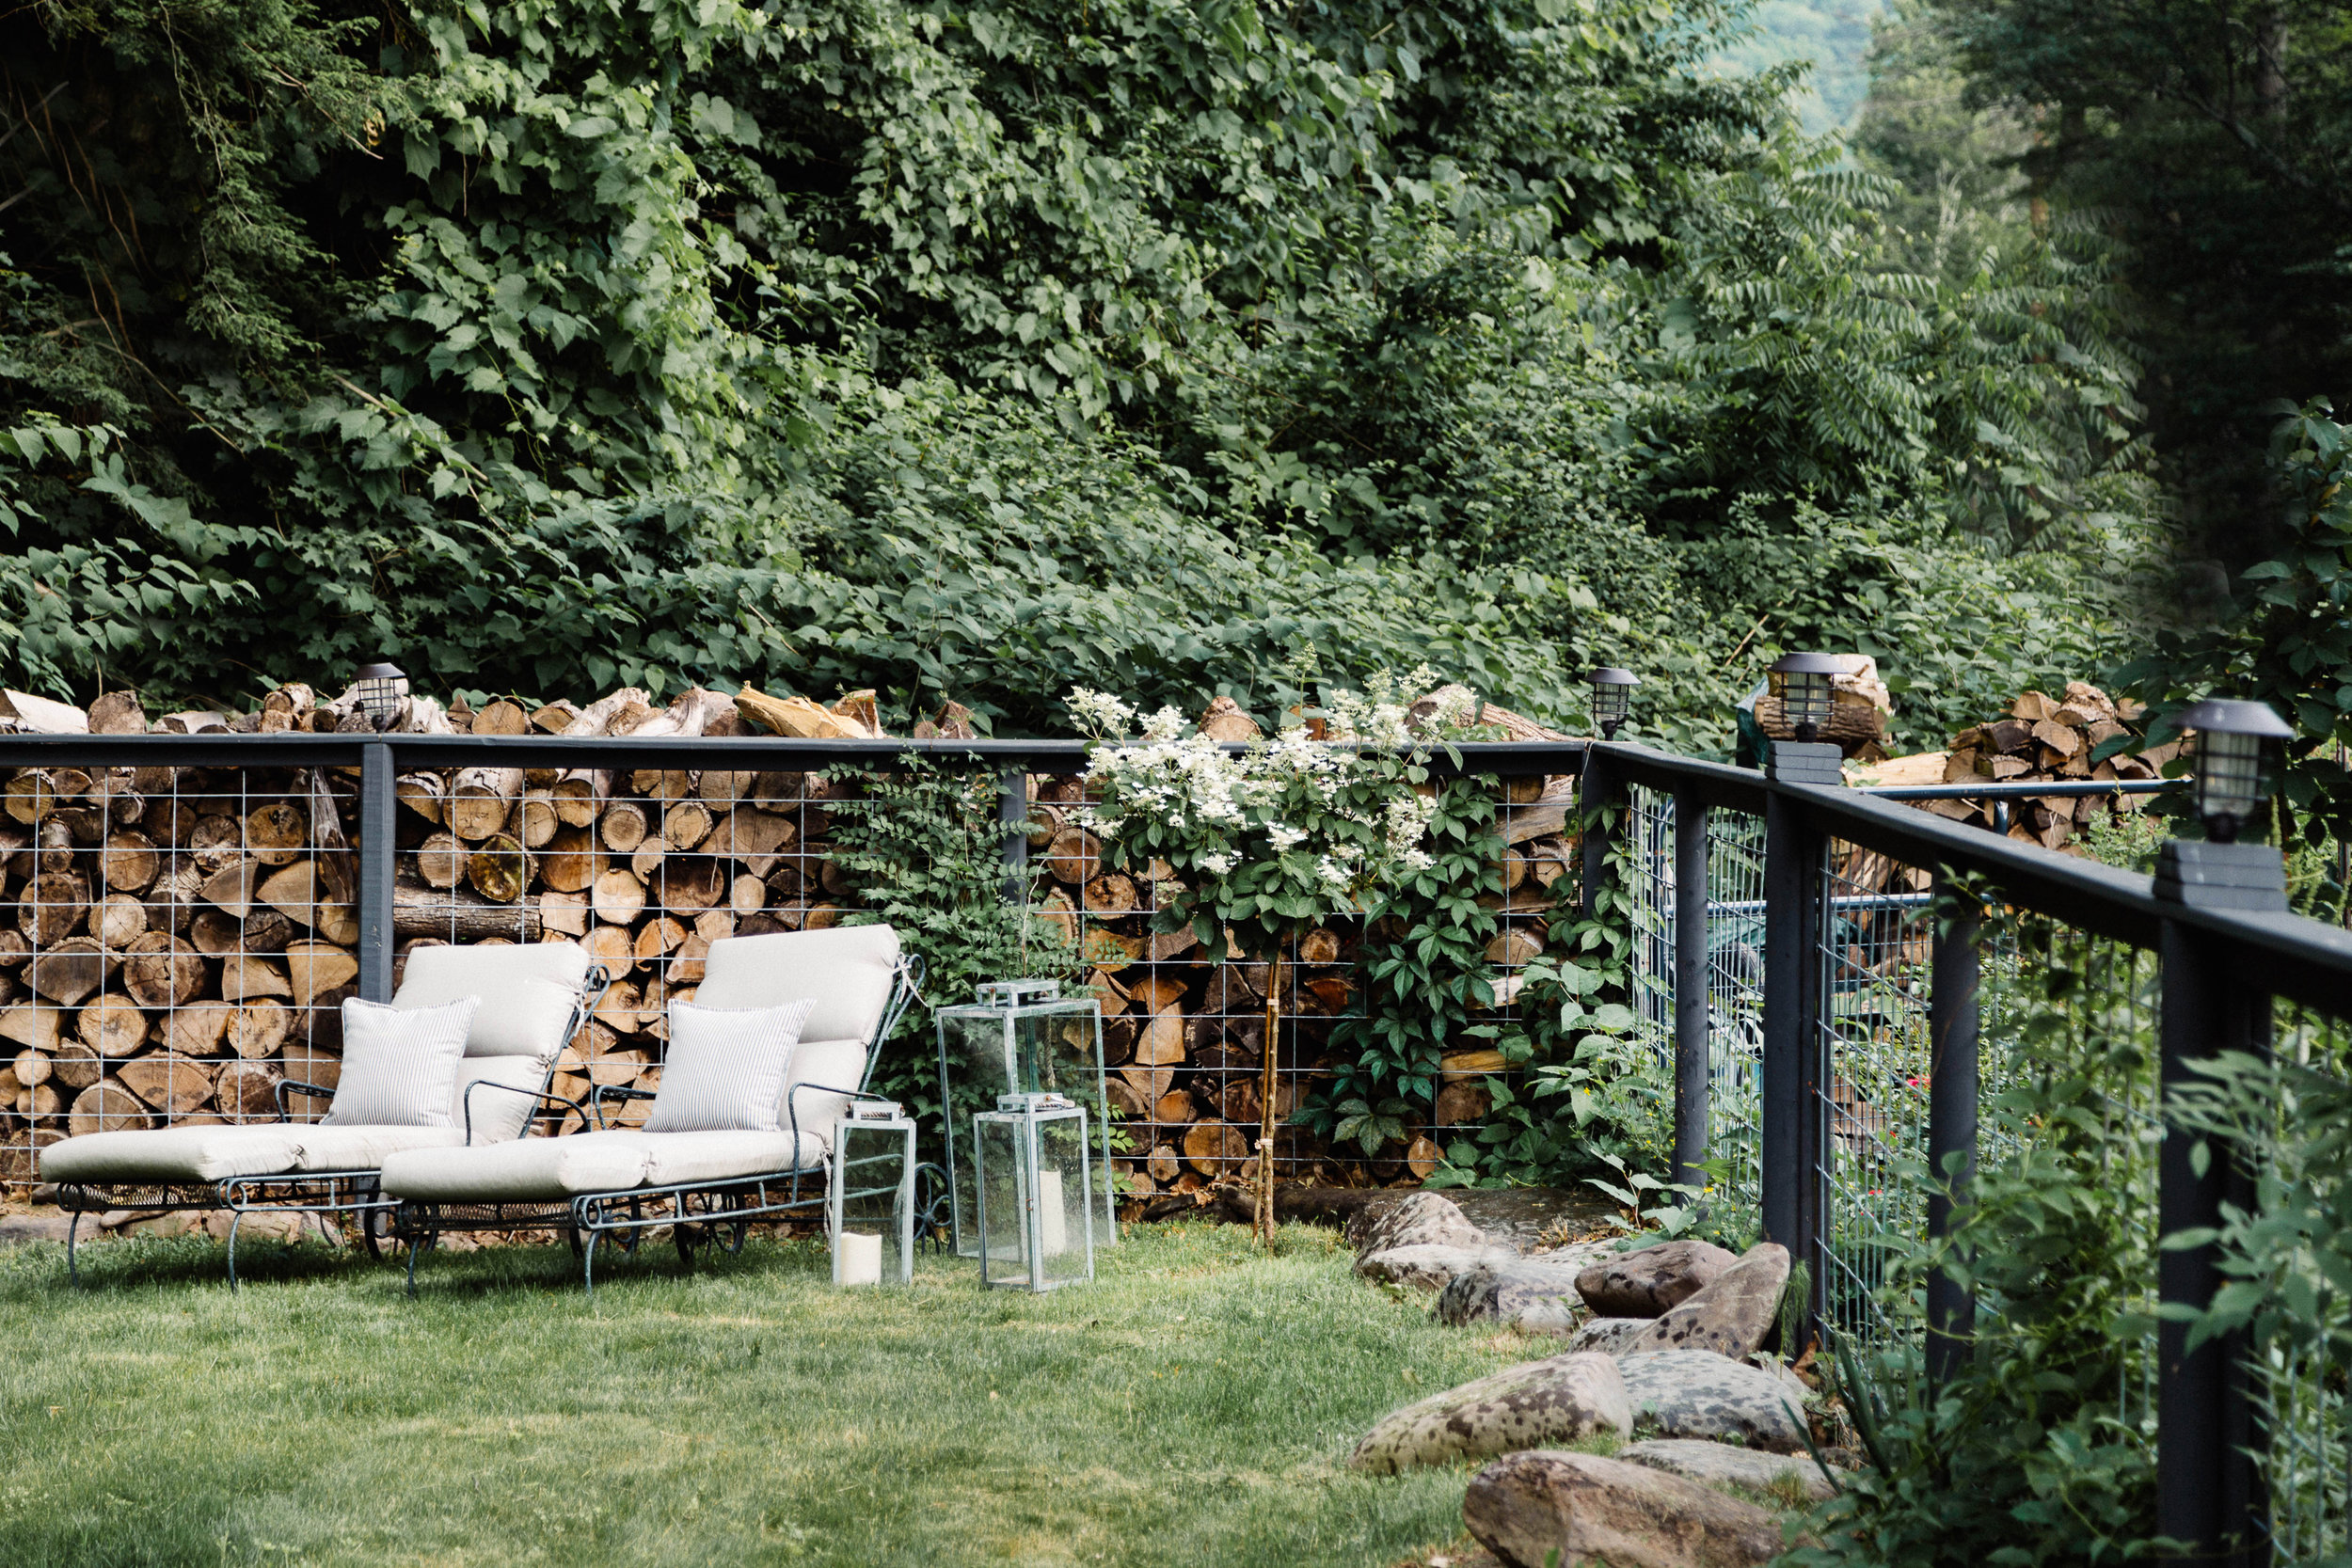 Outdoor area with lounge chairs and stacked wood